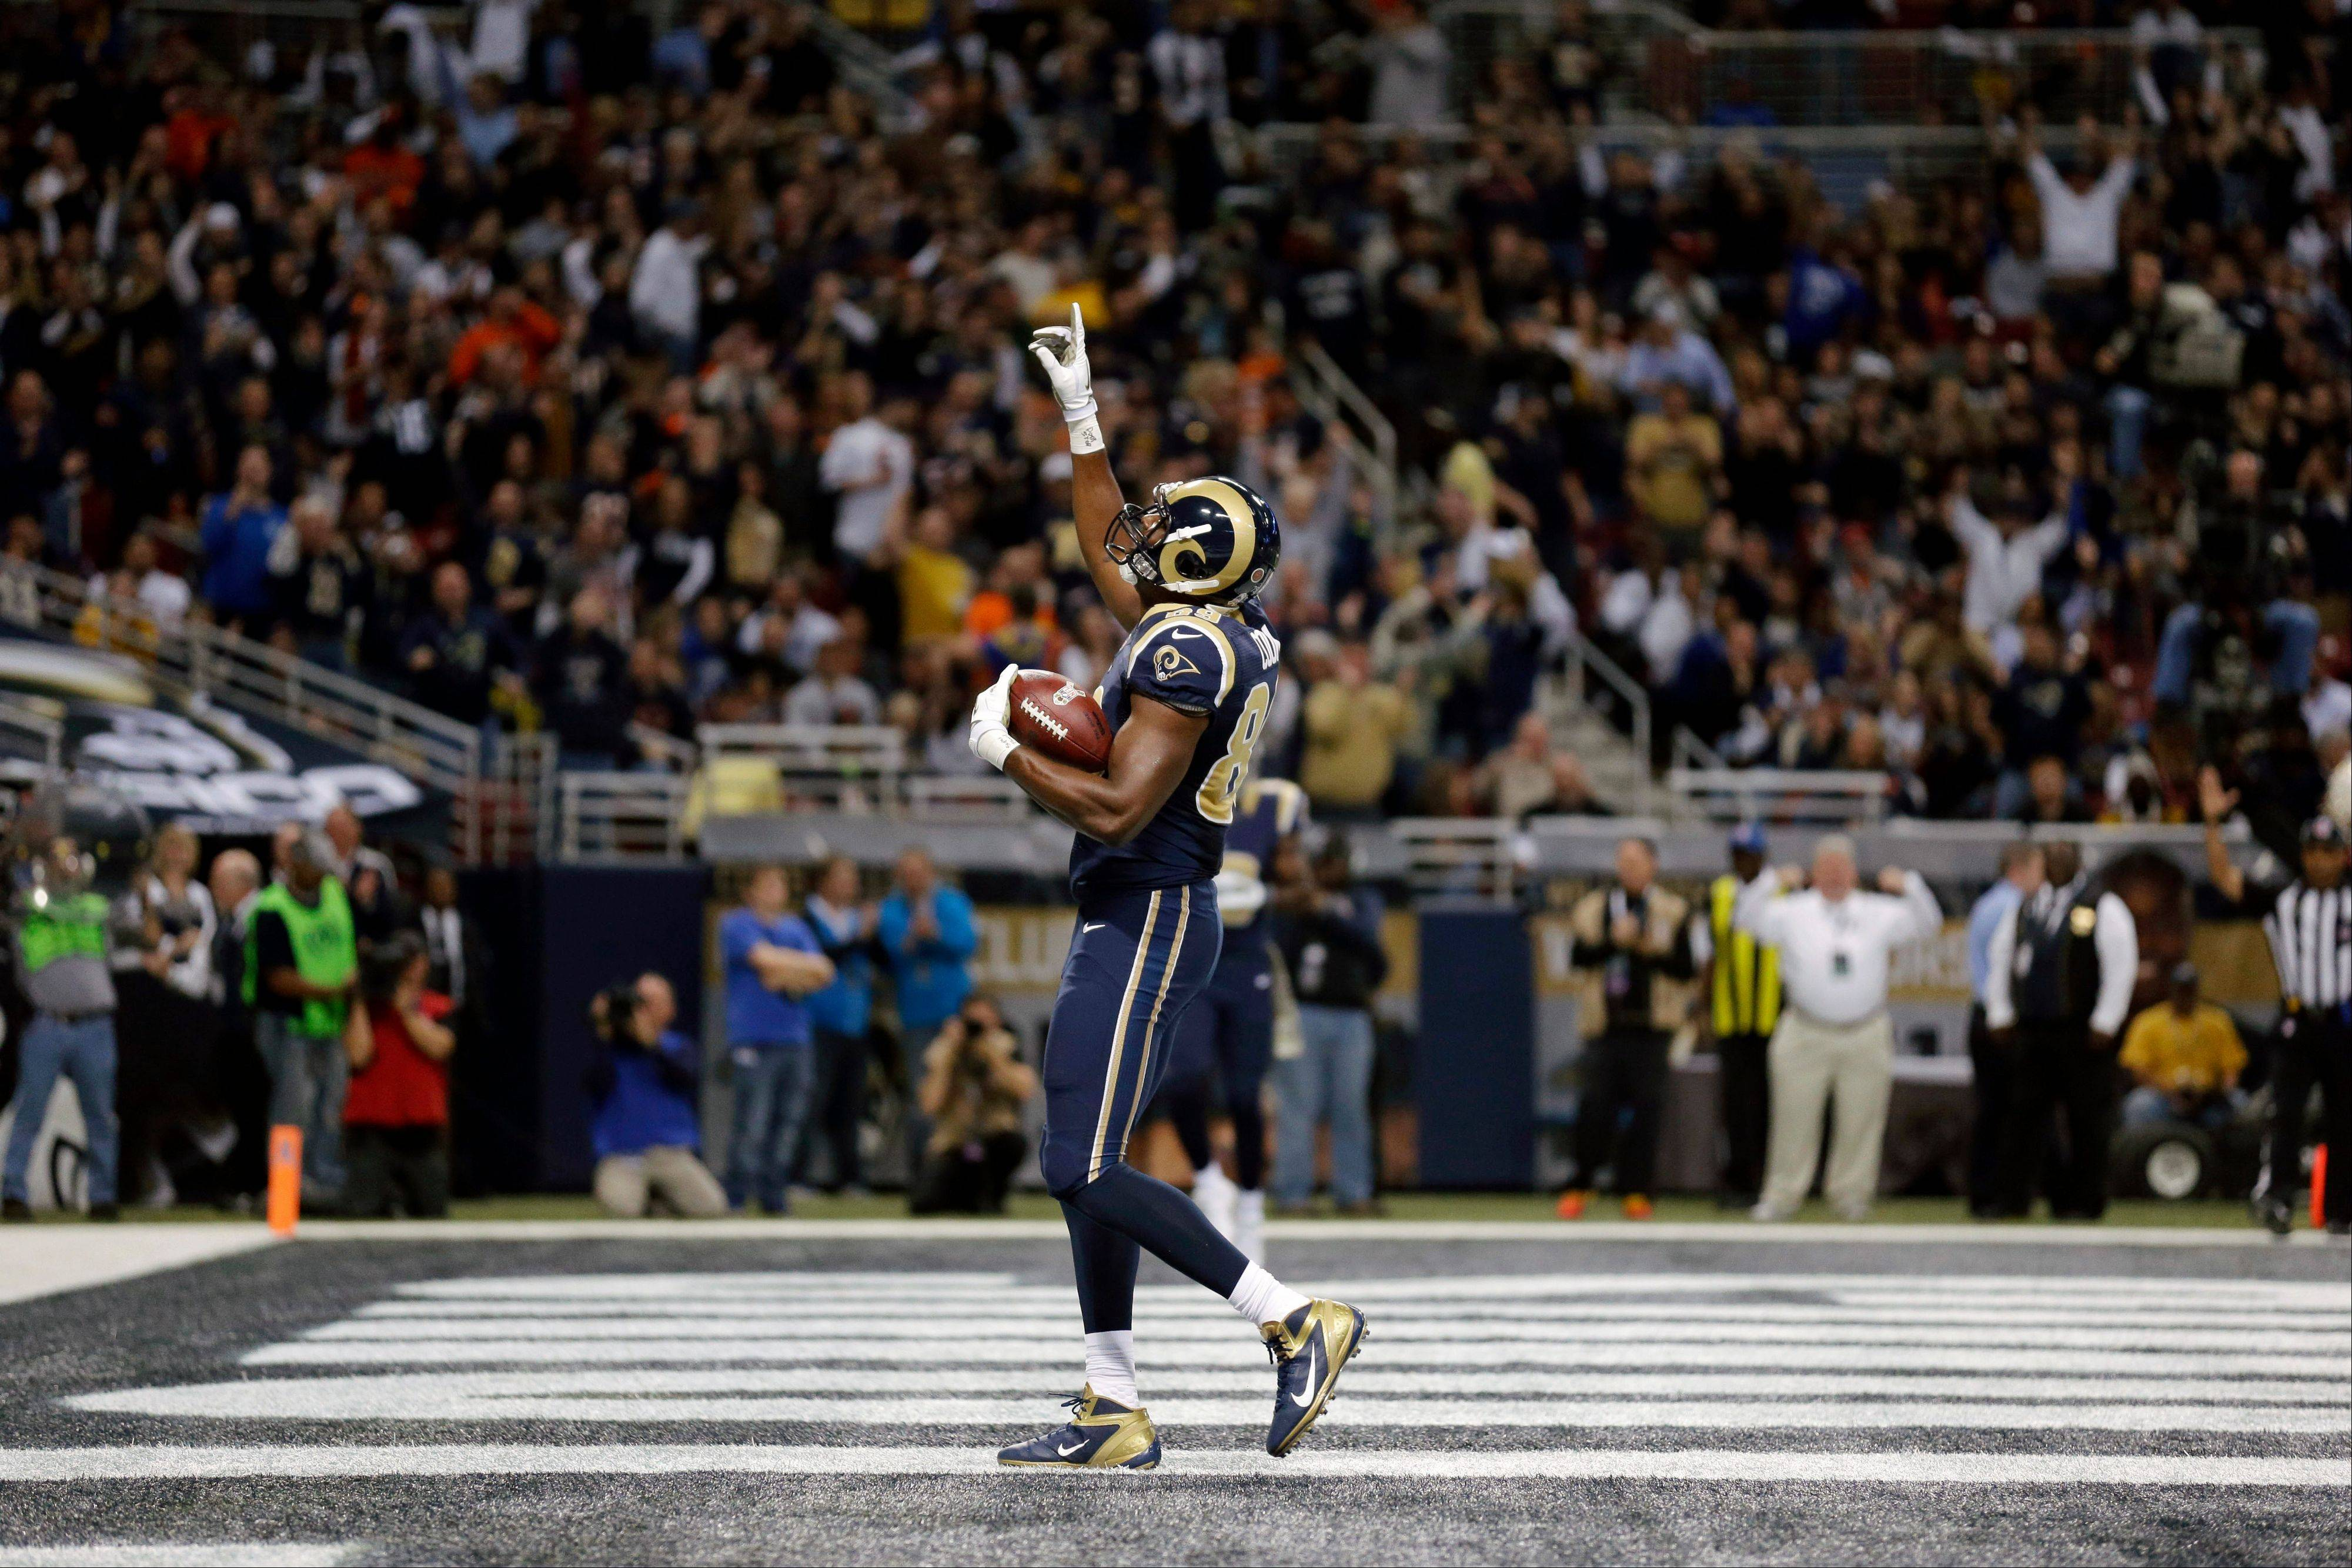 St. Louis Rams tight end Jared Cook celebrates after catching a 6-yard touchdown pass during the first quarter.